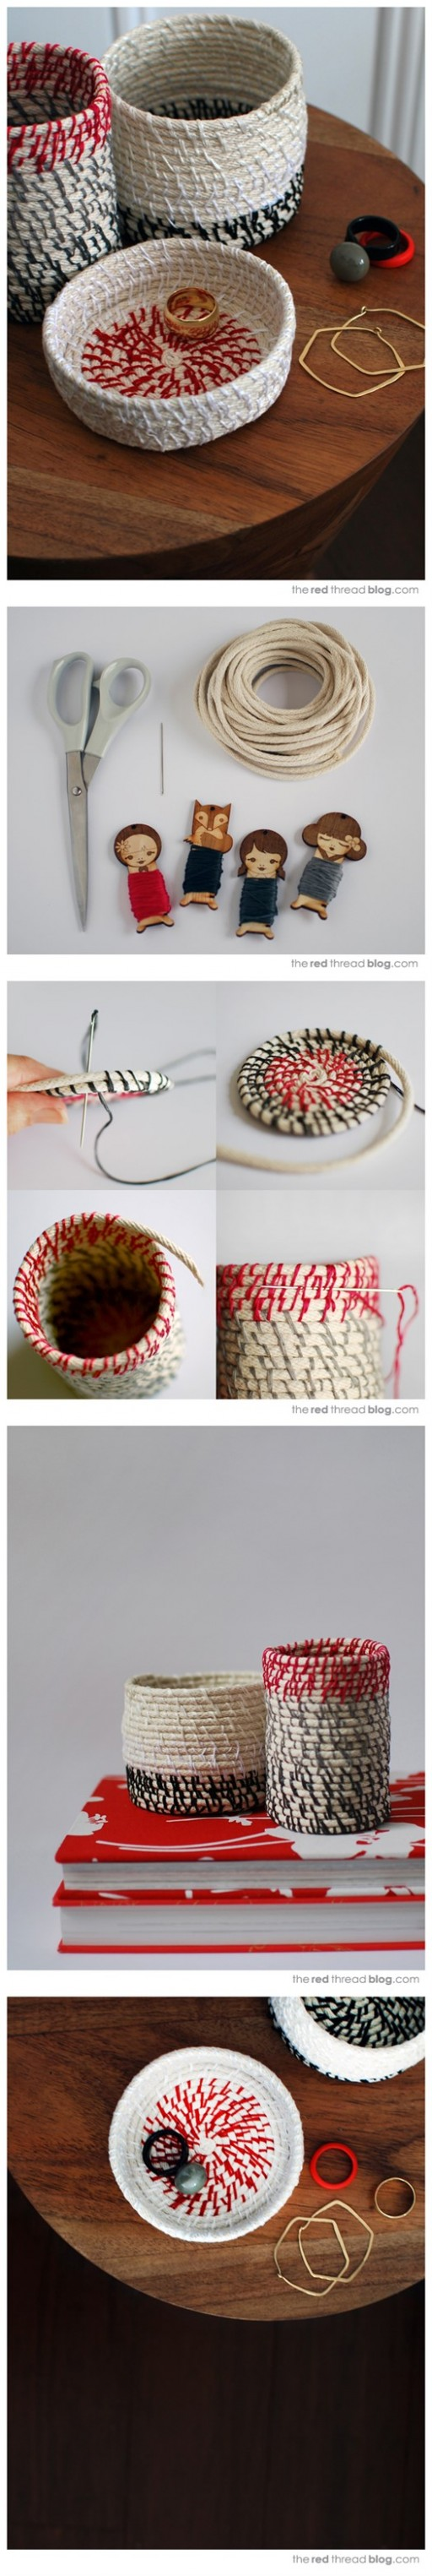 How To Make DIY Rope Coil Vessels Tutorial 2